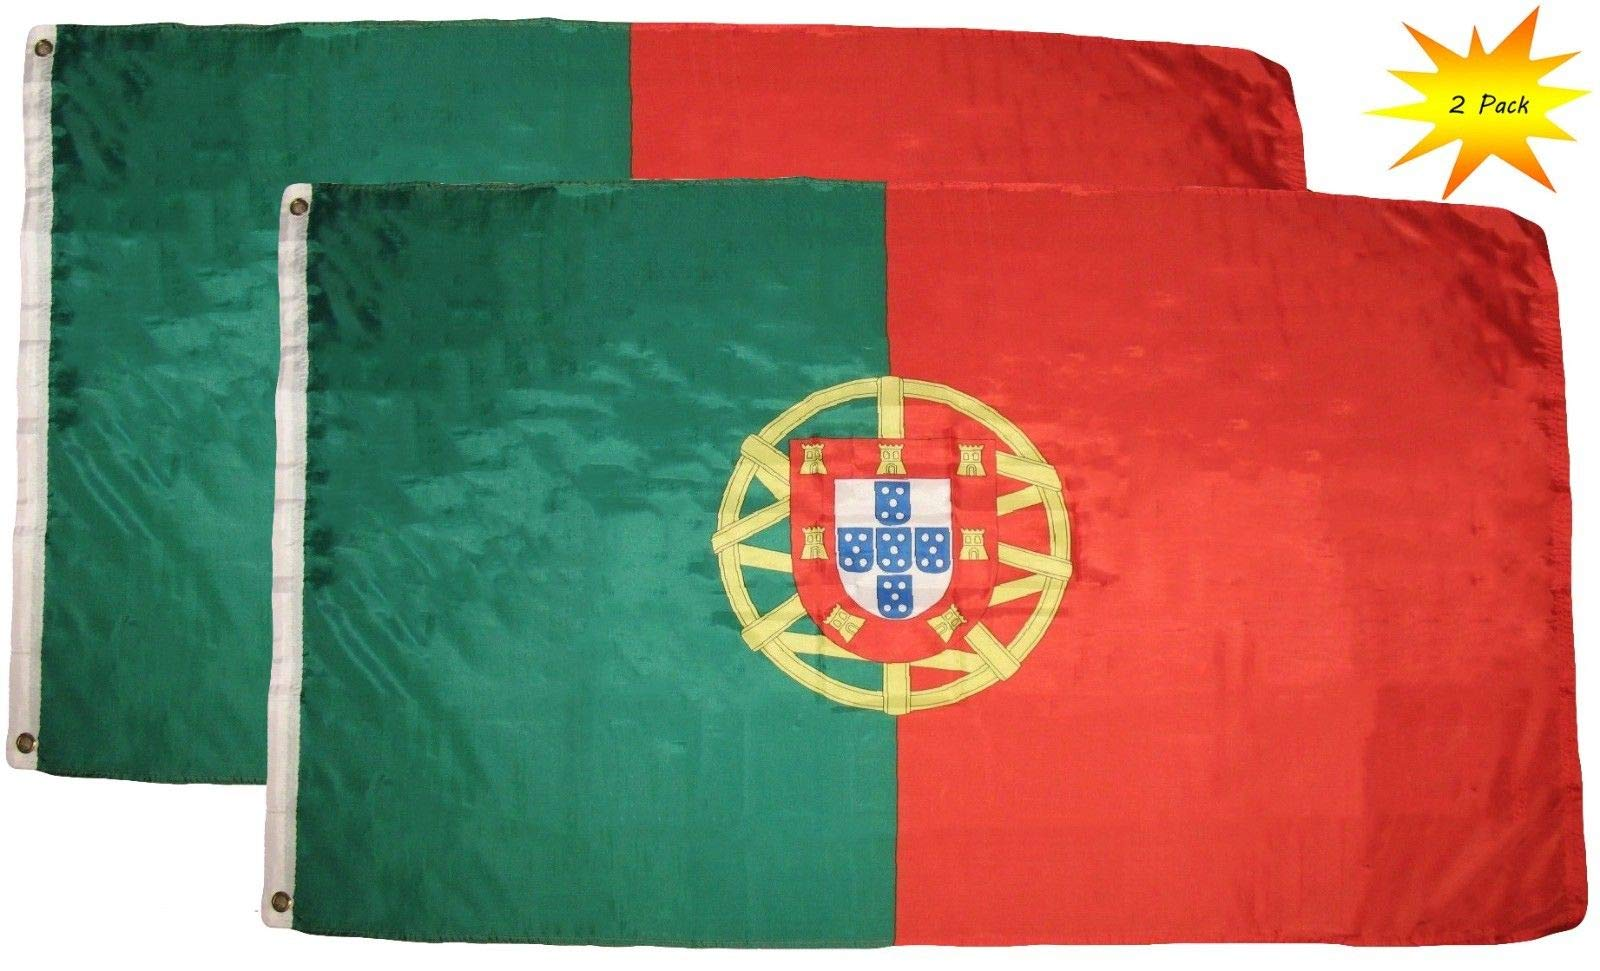 ALBATROS Portugal Flags - 2 Pack Outdoor 3 ft x 5 ft Feet Portugal Flags Portuguese National Flag for Home and Parades, Official Party, All Weather Indoors Outdoors by ALBATROS